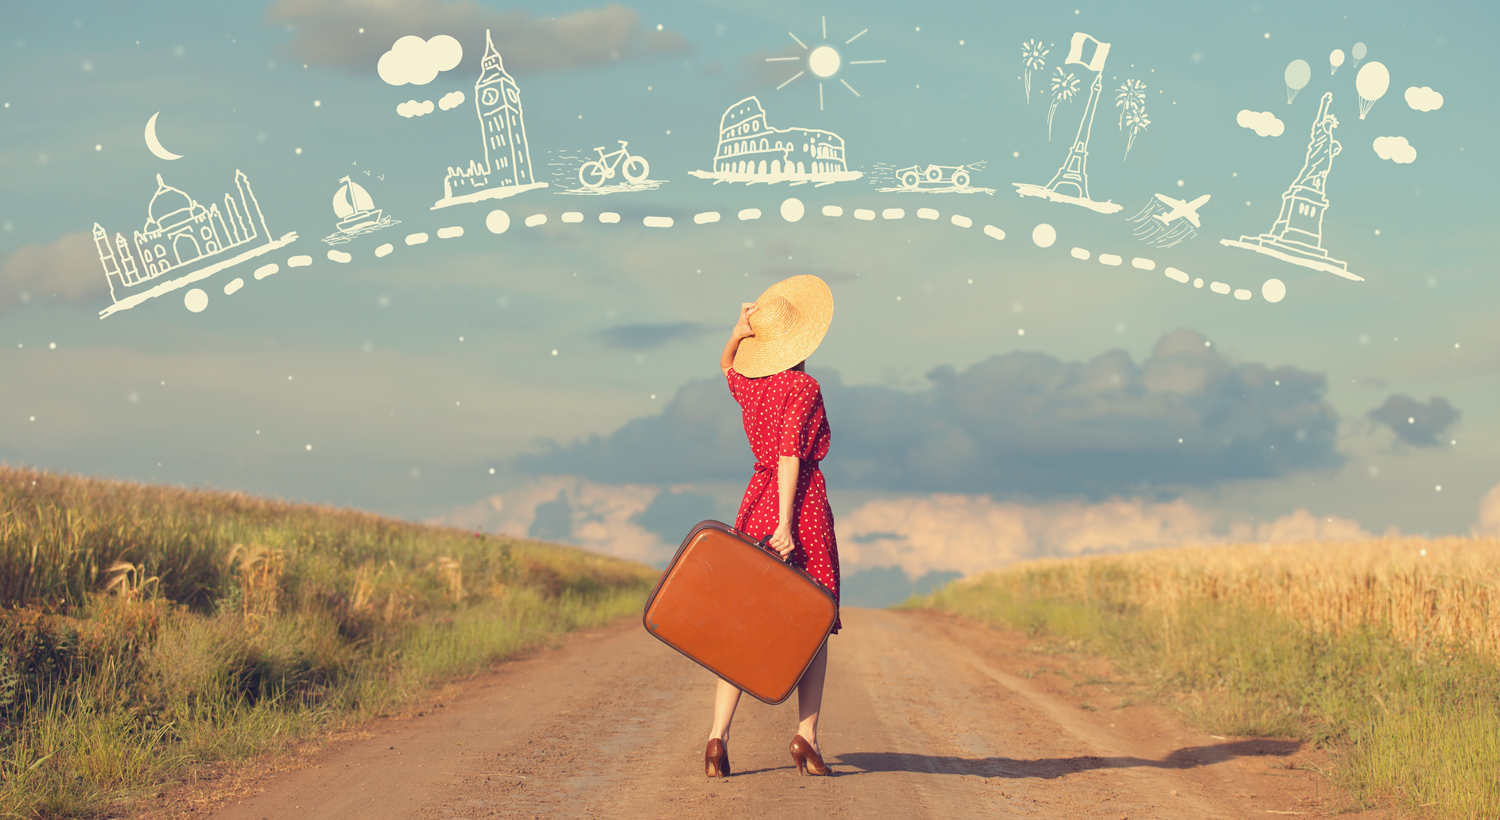 TRAVELING-SHUTTERSTOCK-IMAGE-P1-